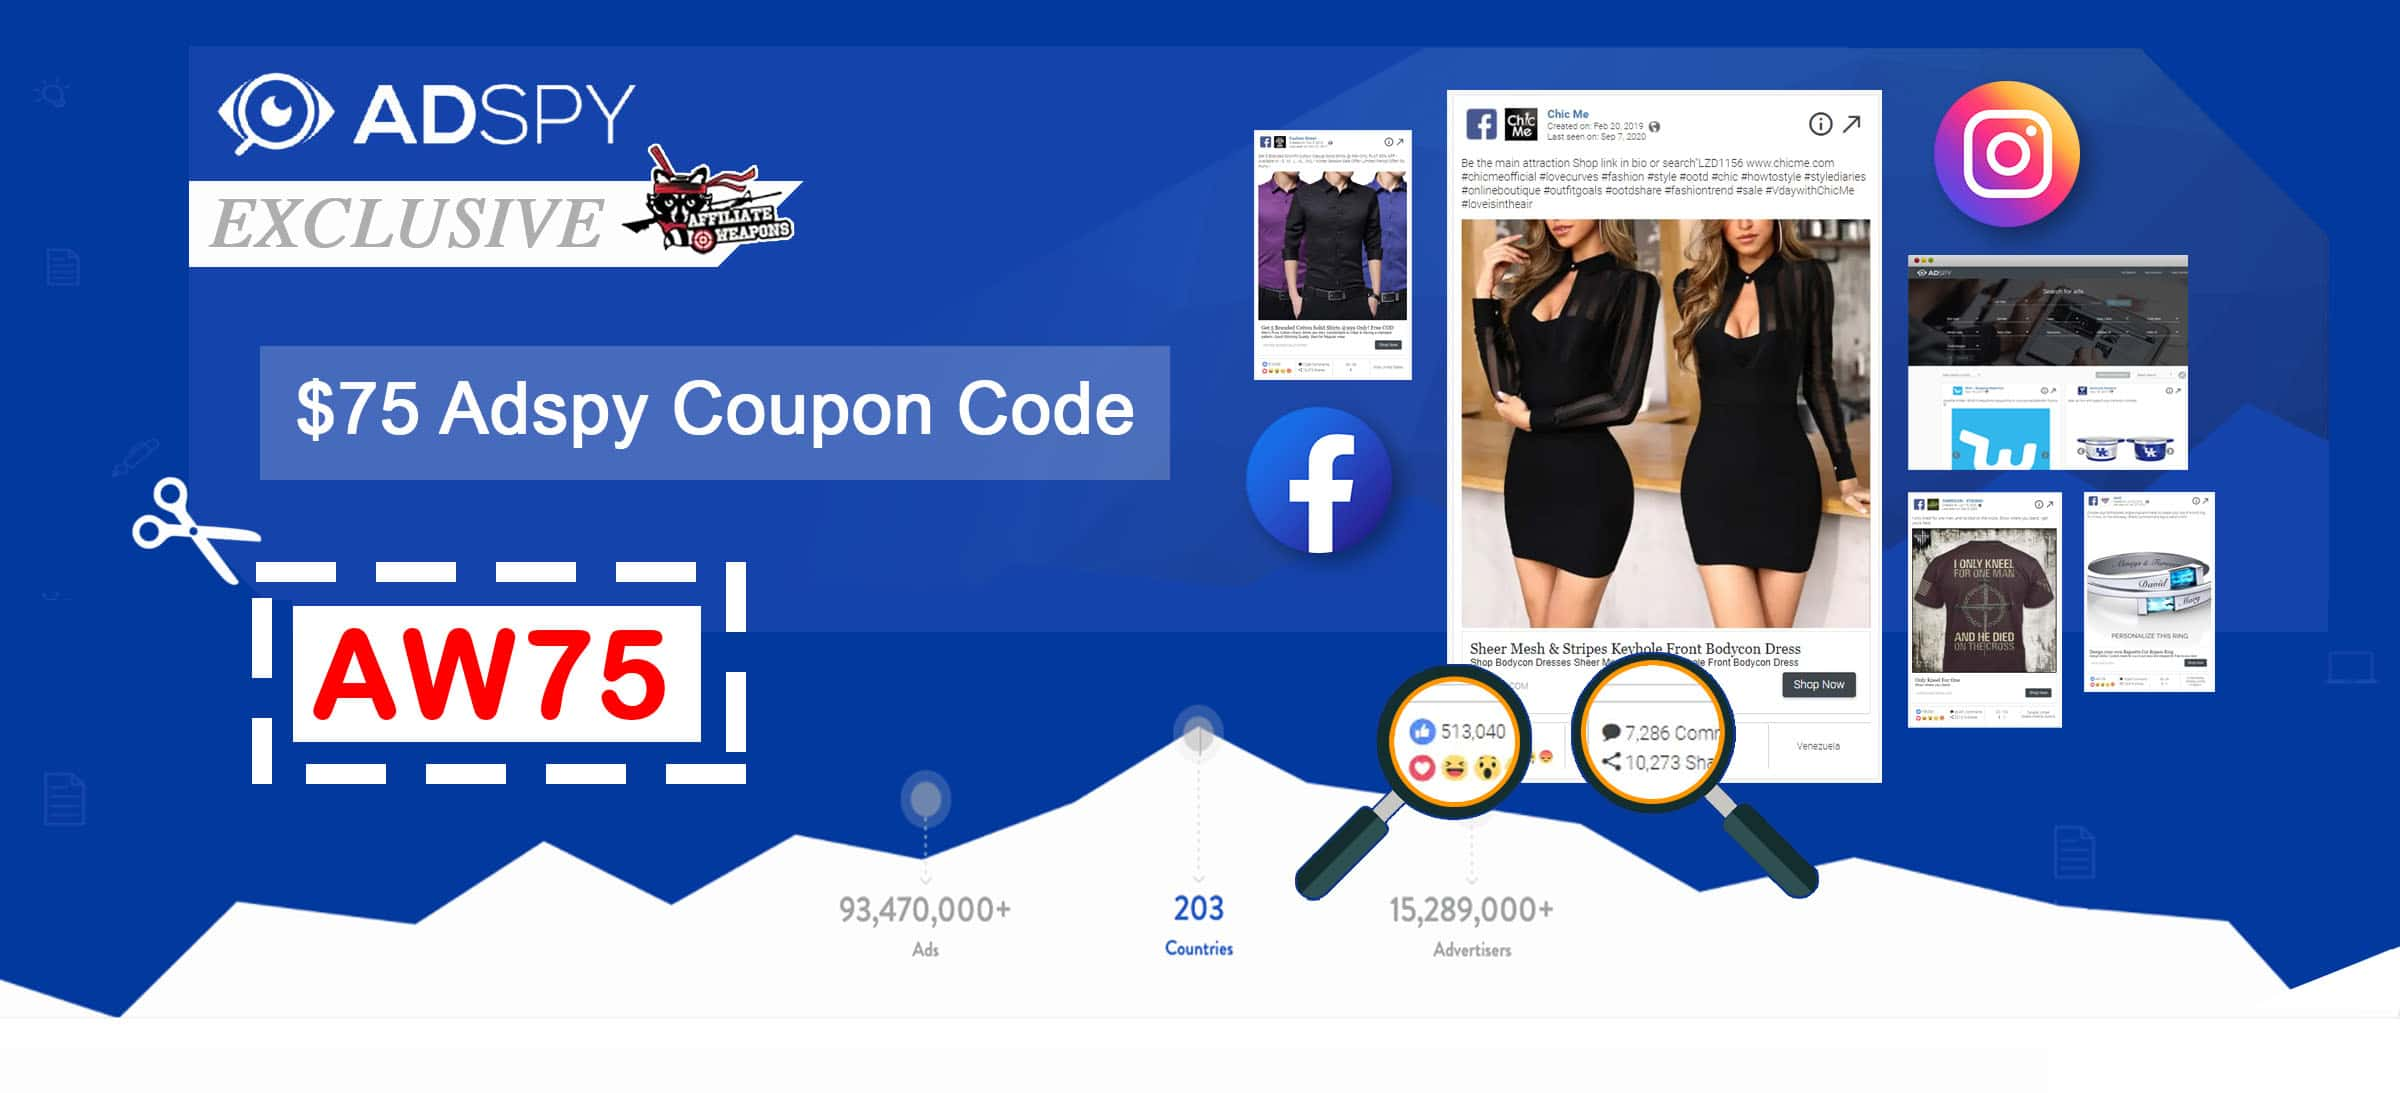 150 Adspy Coupon 2021 Free Trial 1 Fb Ads Spy Tool Save money on your hong kong travel, retail, food, with coupons, discount codes, sales, offers, gift cards for all hong kong store brands at mycouponcodes, your ultimate saving guide for 2020. 150 adspy coupon 2021 free trial